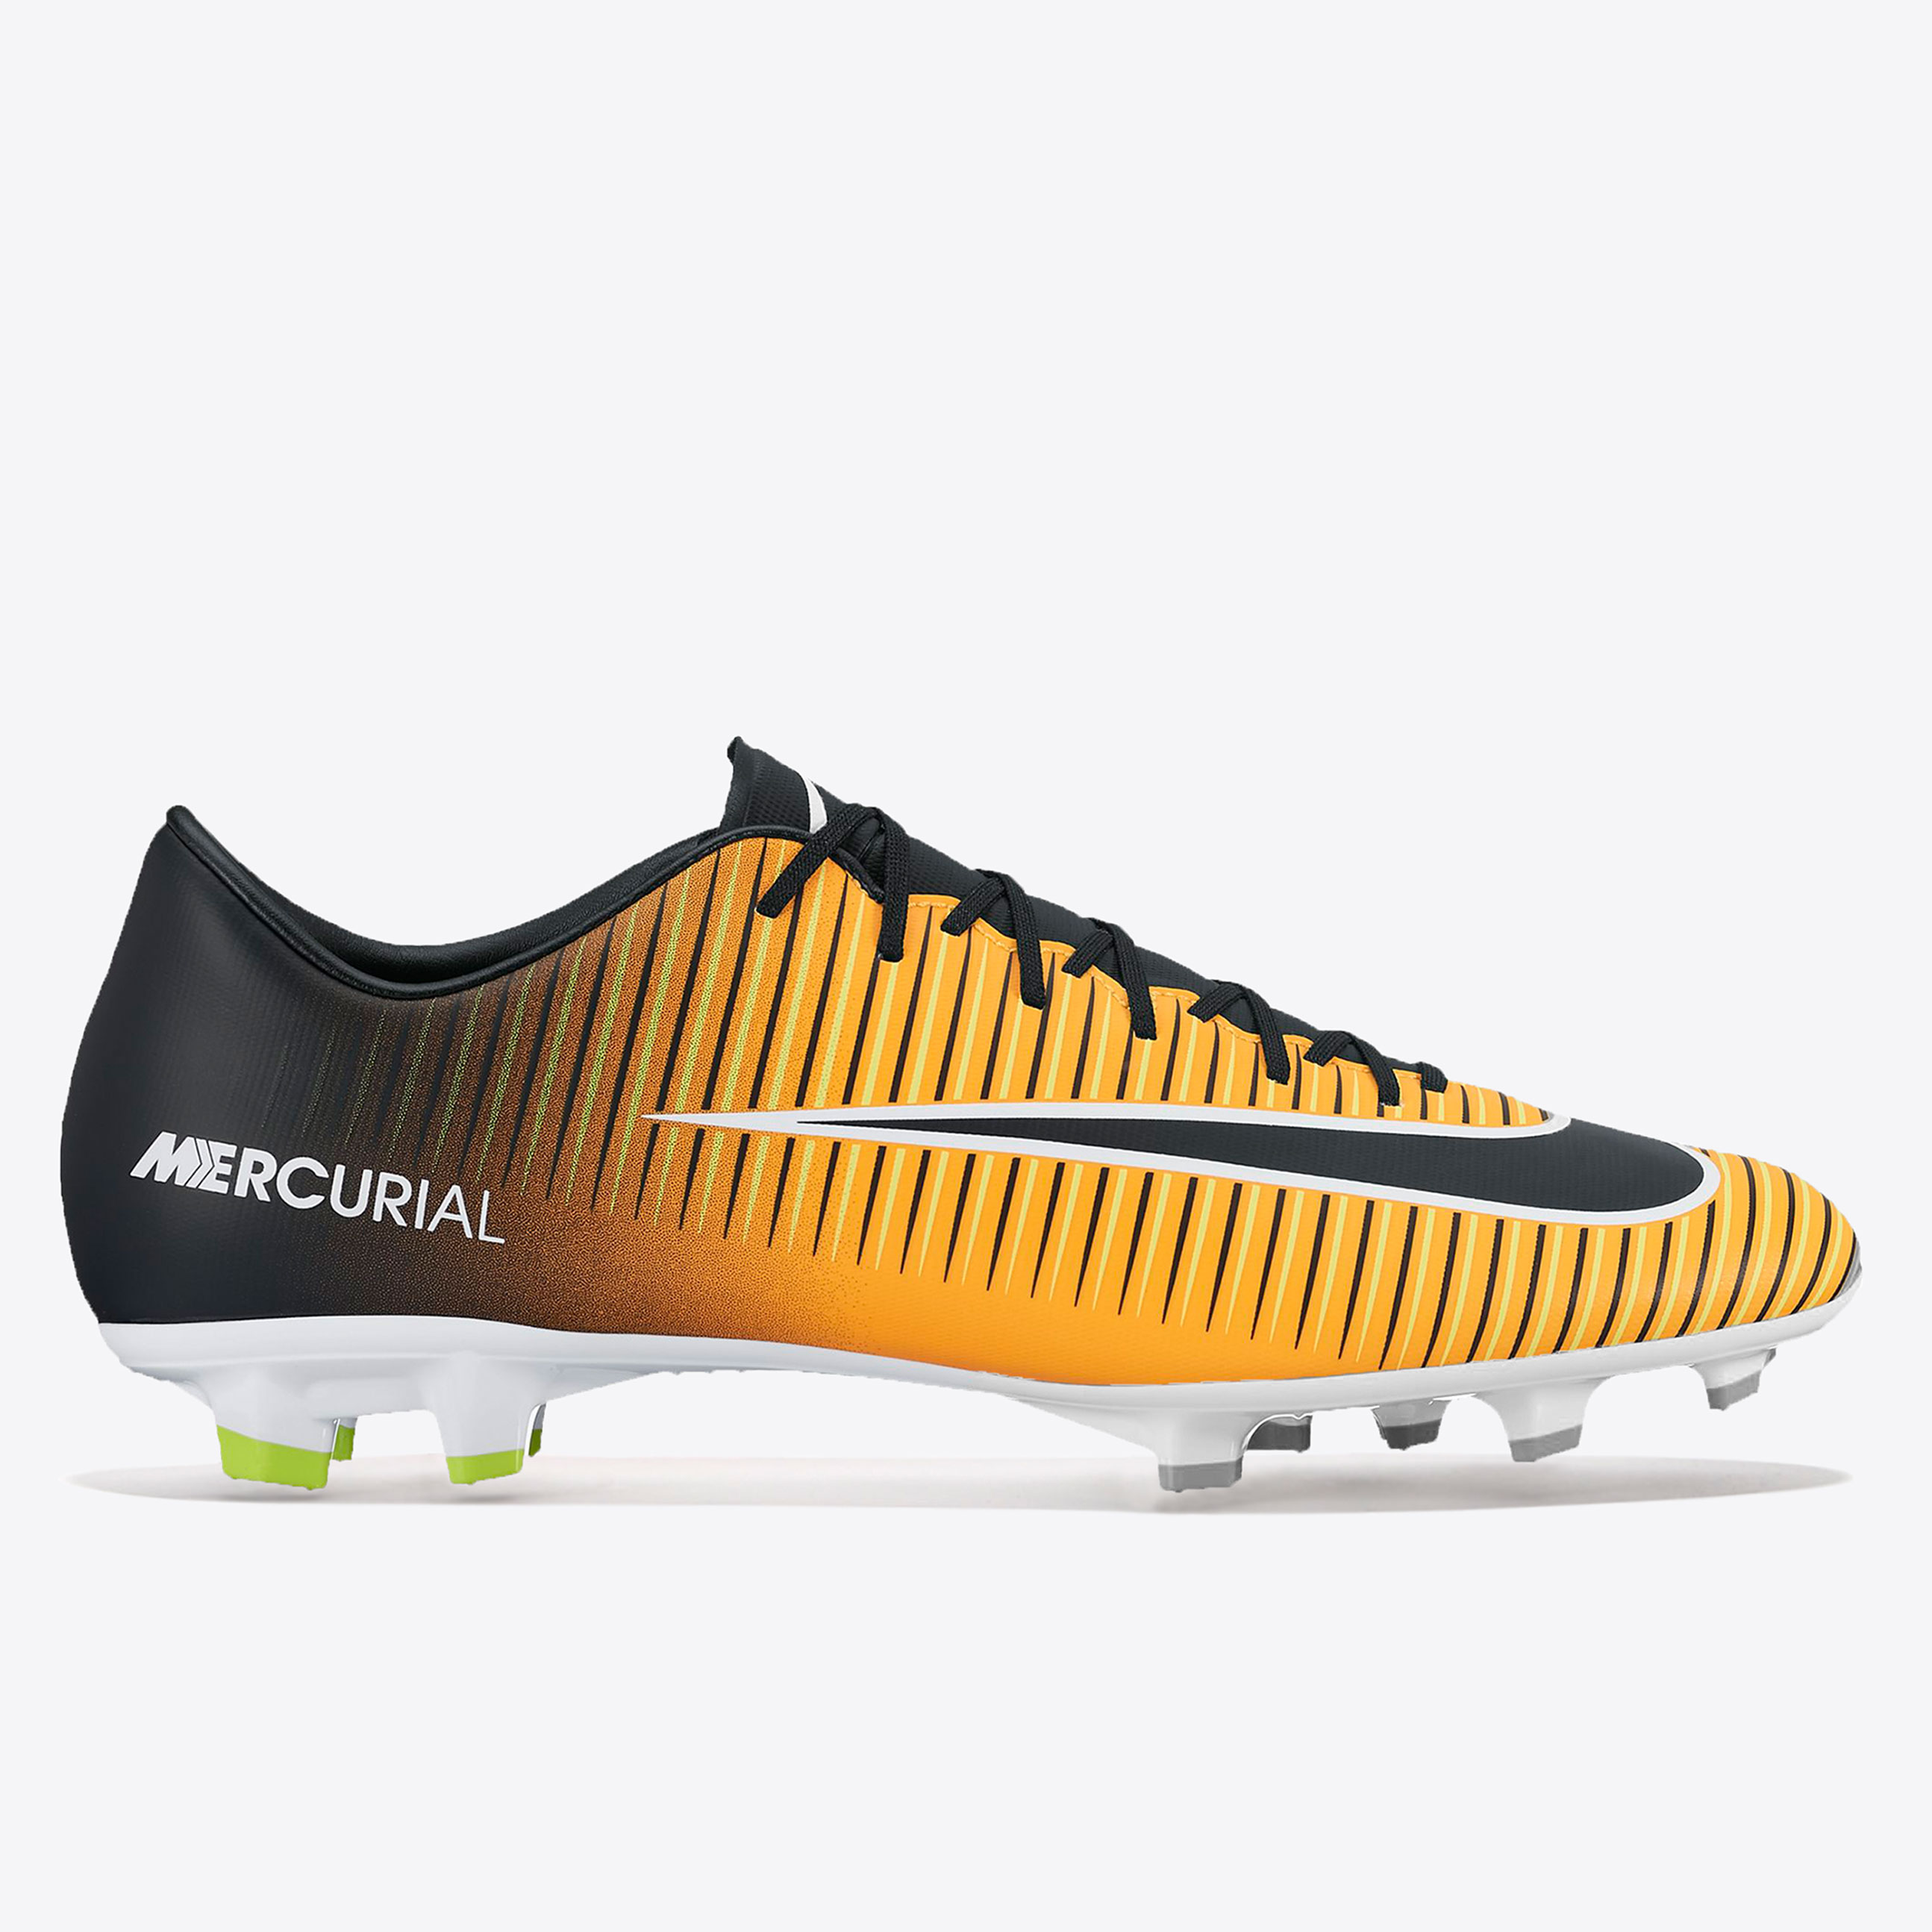 Nike Mercurial Victory VI Firm Ground Football Boots - Laser Orange/Bl